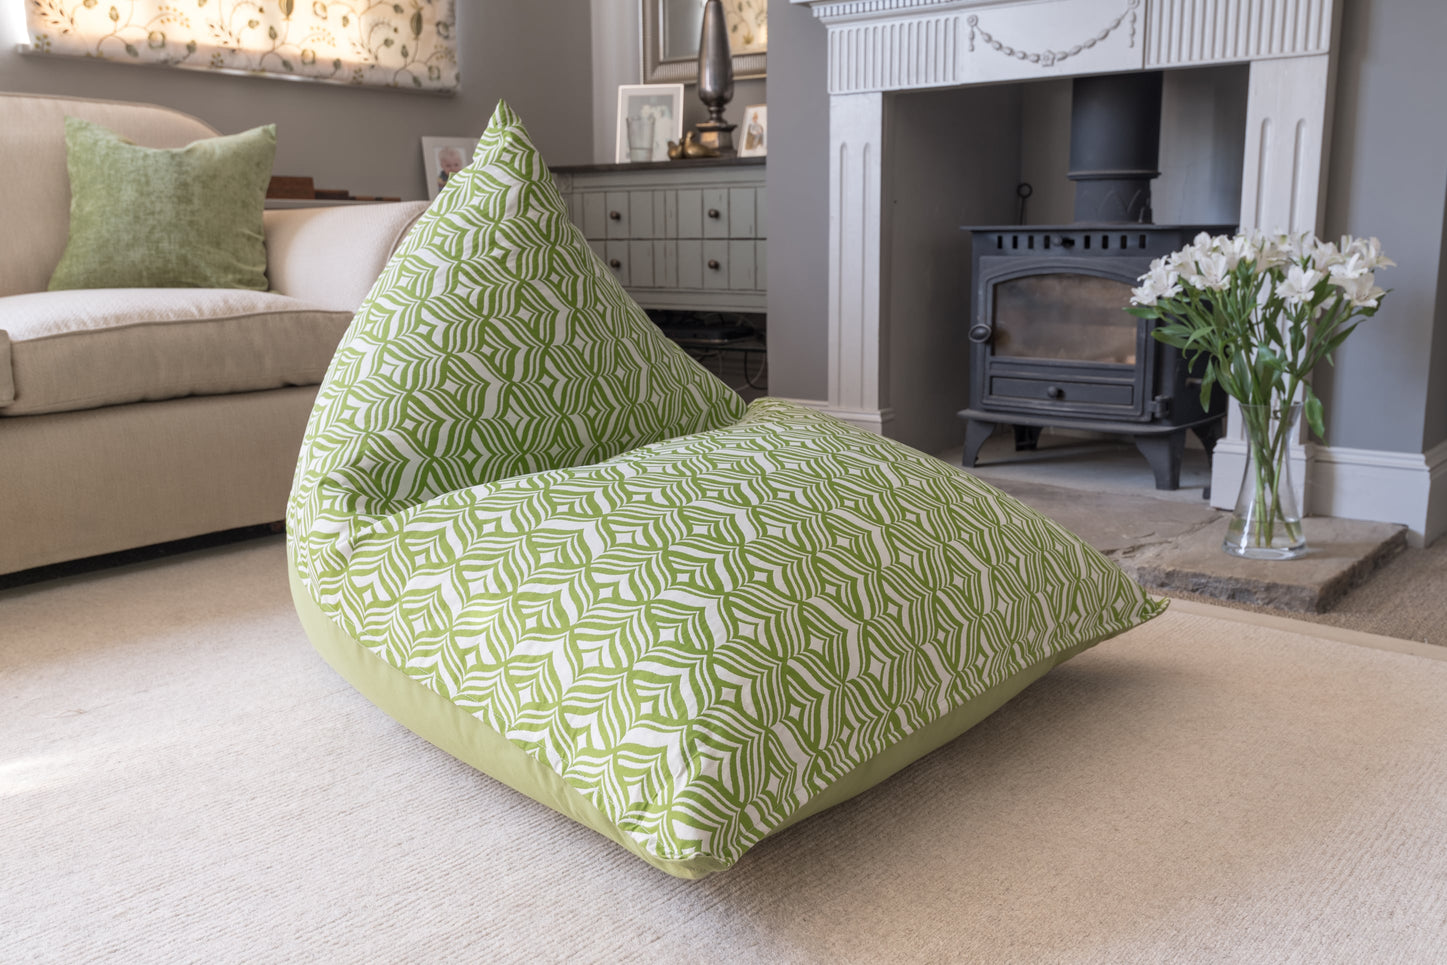 Armadillo Sun bean bag chair in green and white tulip design indoors